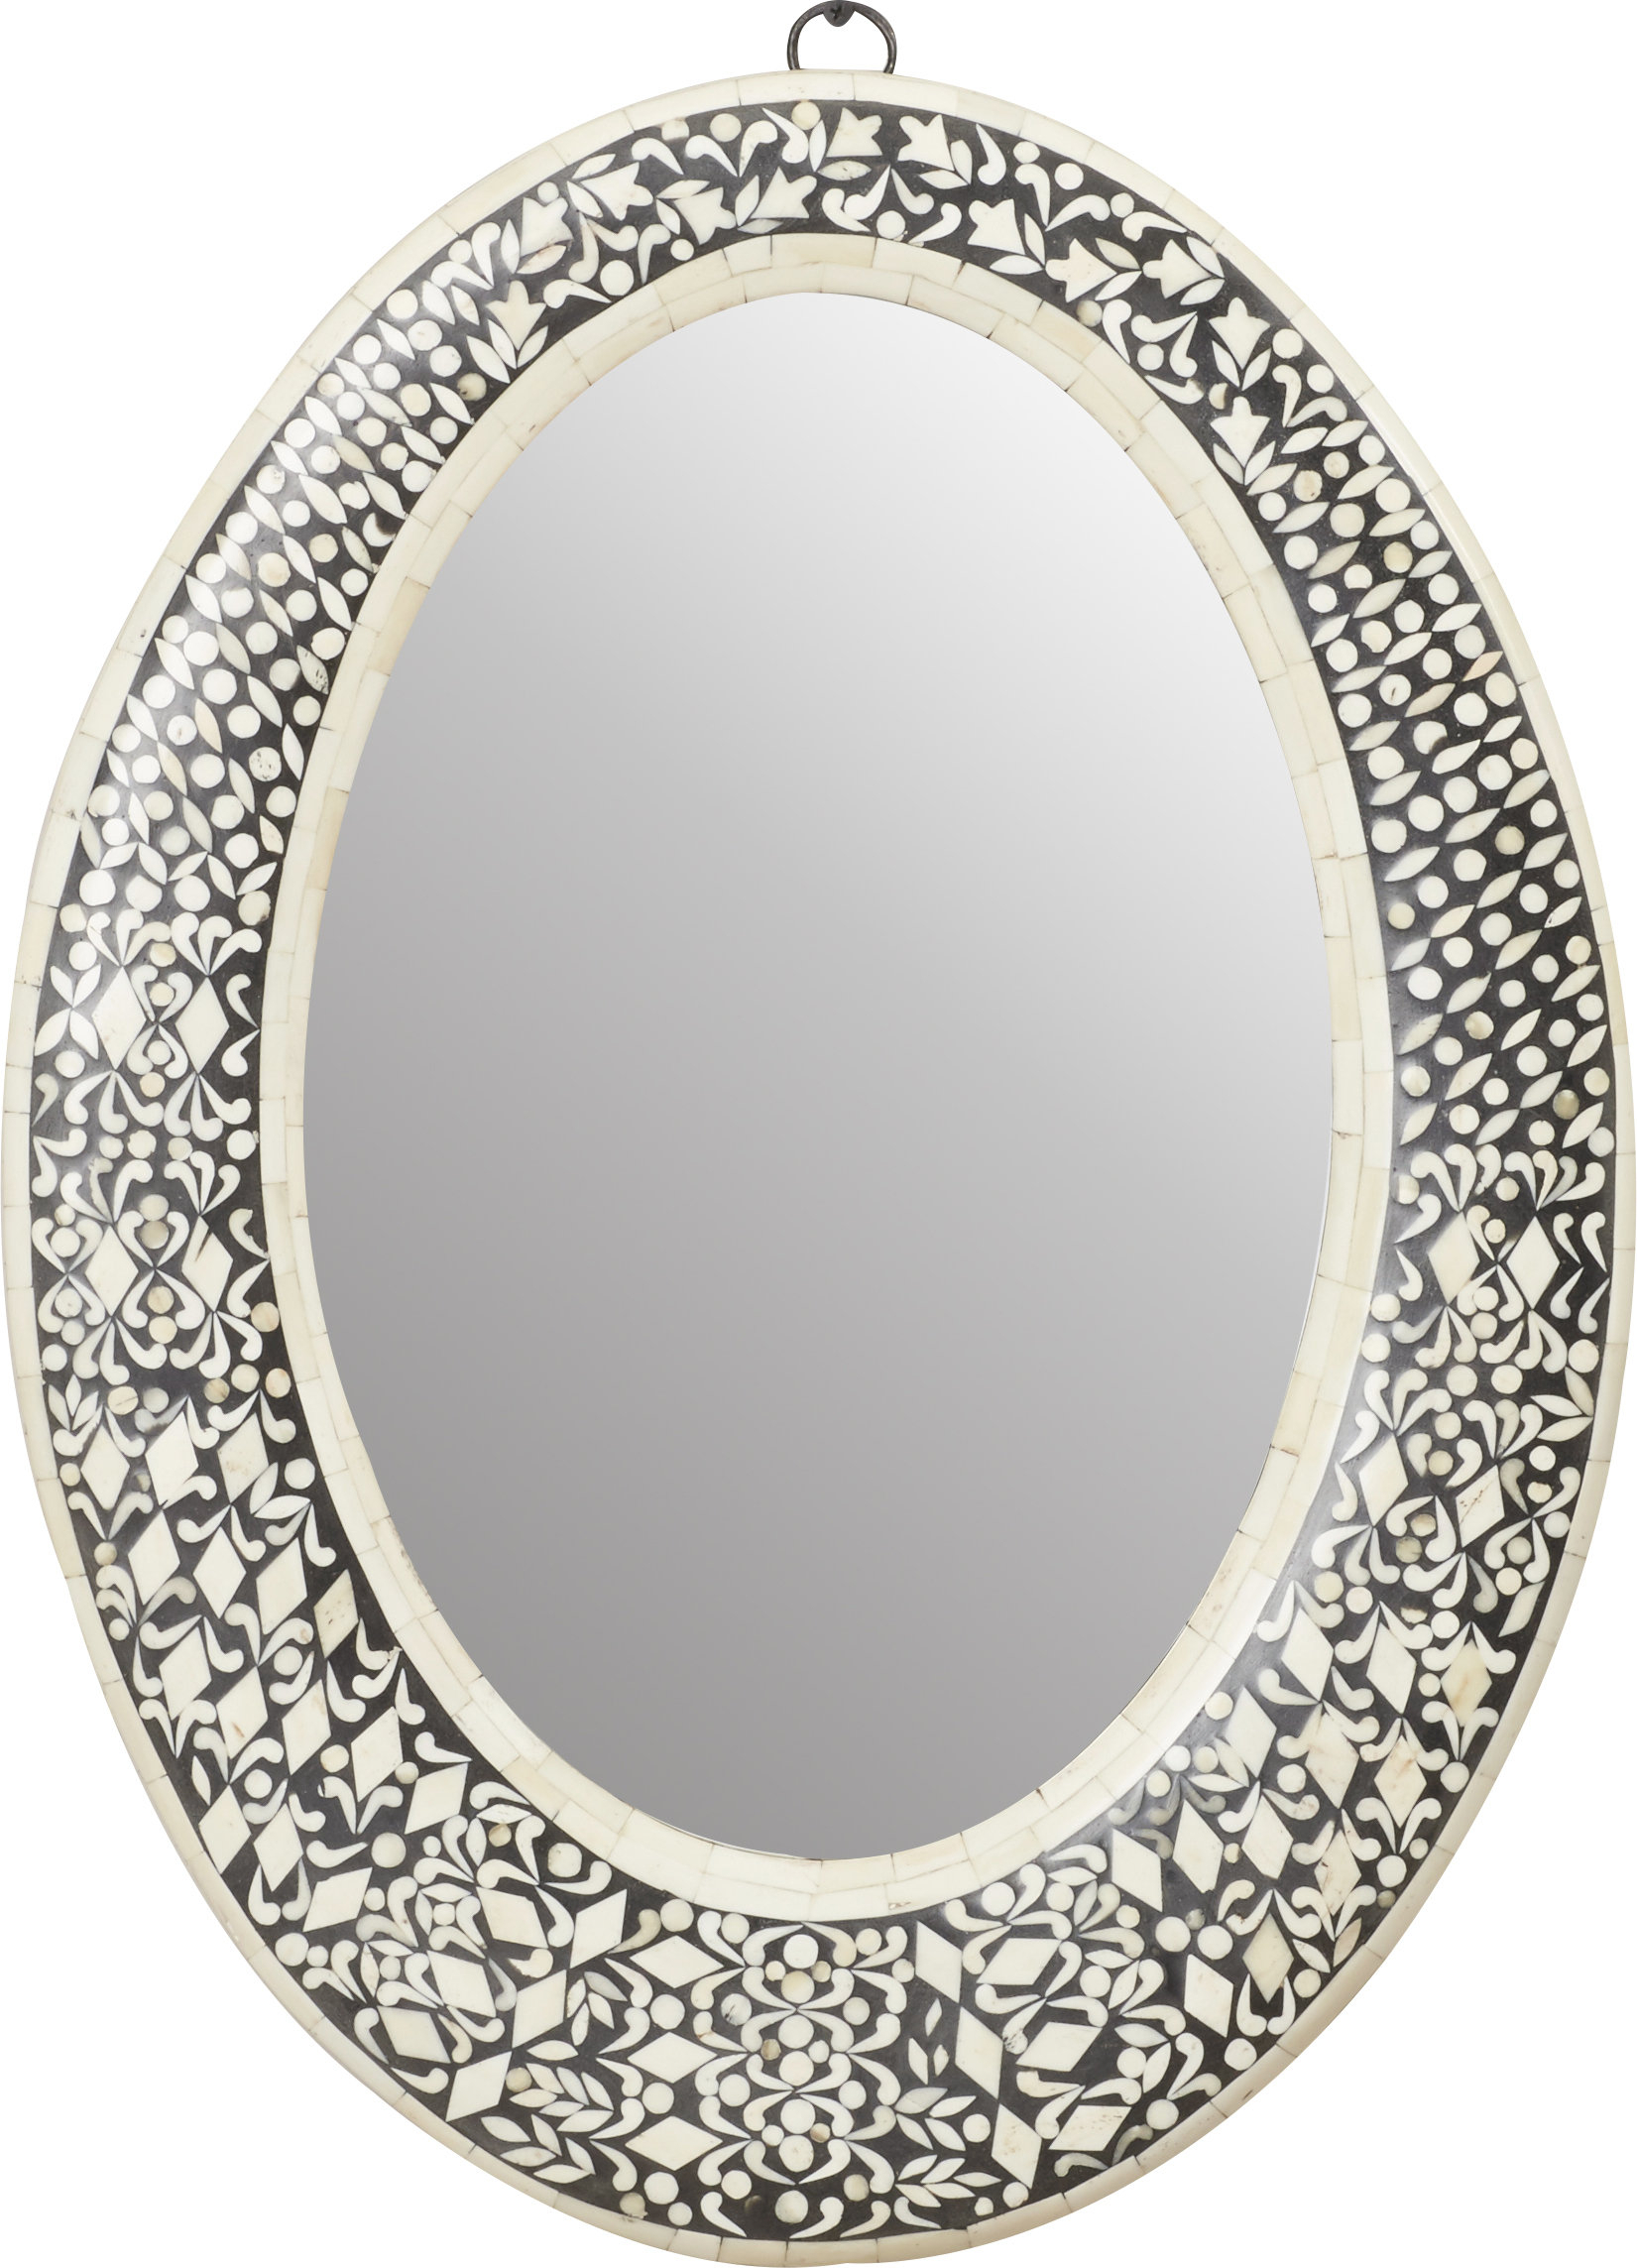 Traditional Oval Wall Mirror pertaining to Point Reyes Molten Round Wall Mirrors (Image 26 of 30)